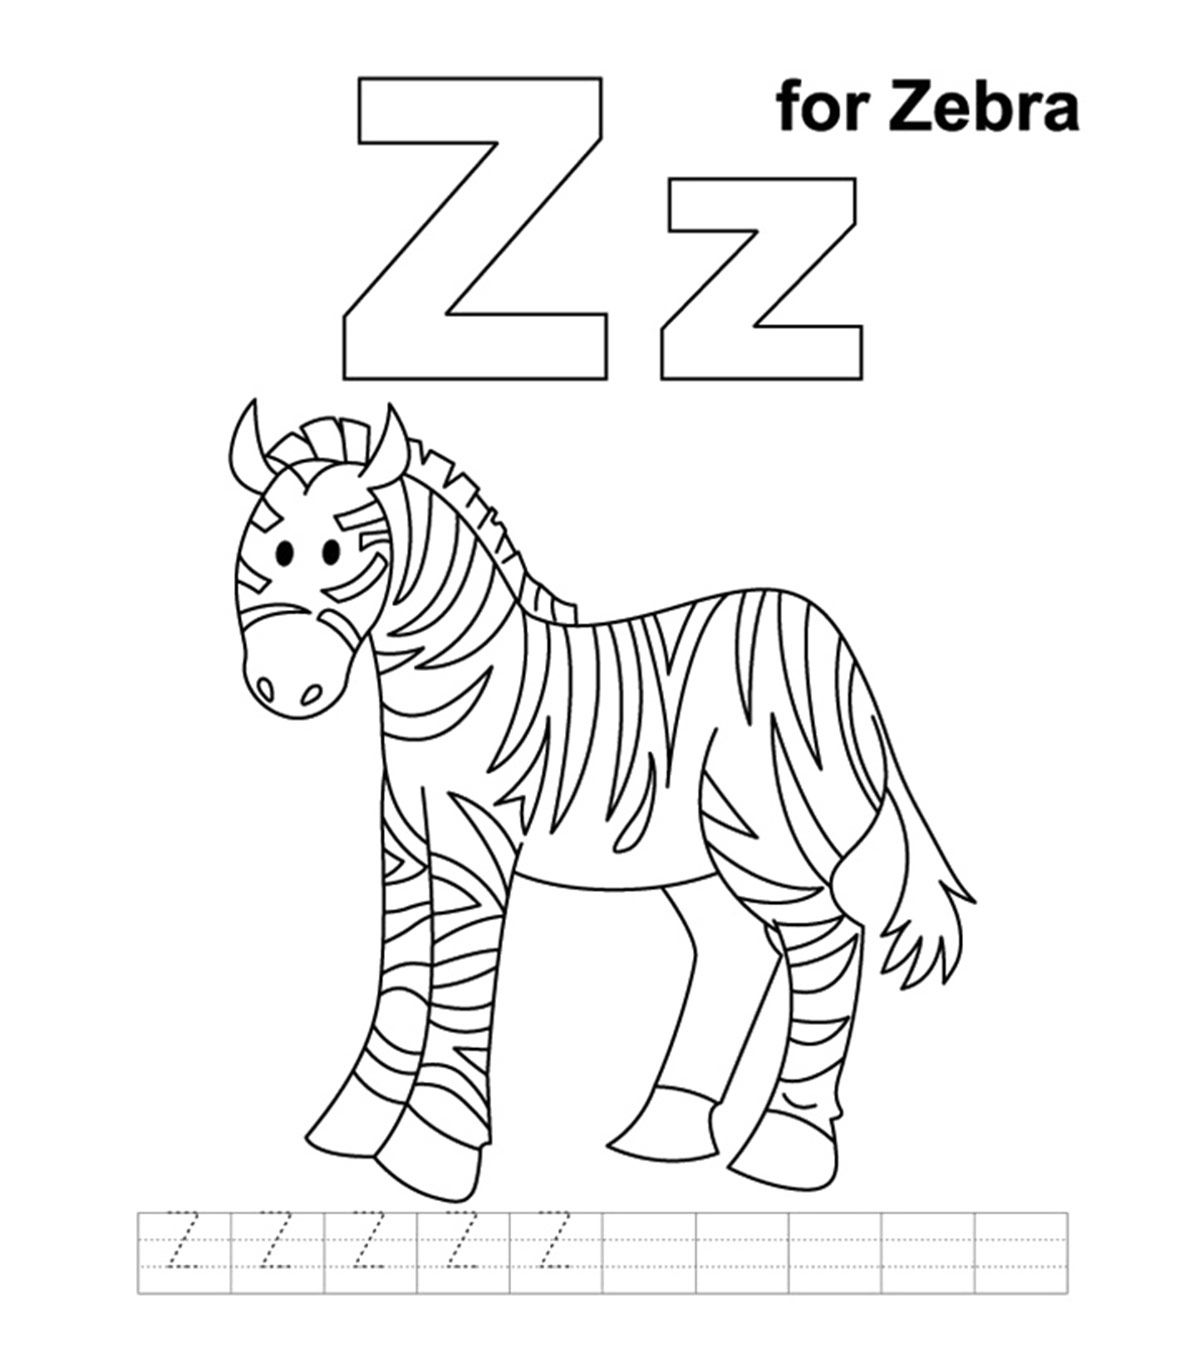 Top 10 Letter Z Coloring Pages Your Toddler Will Love To Learn Color Zebra Coloring Pages Animal Alphabet Letters Alphabet Coloring Pages